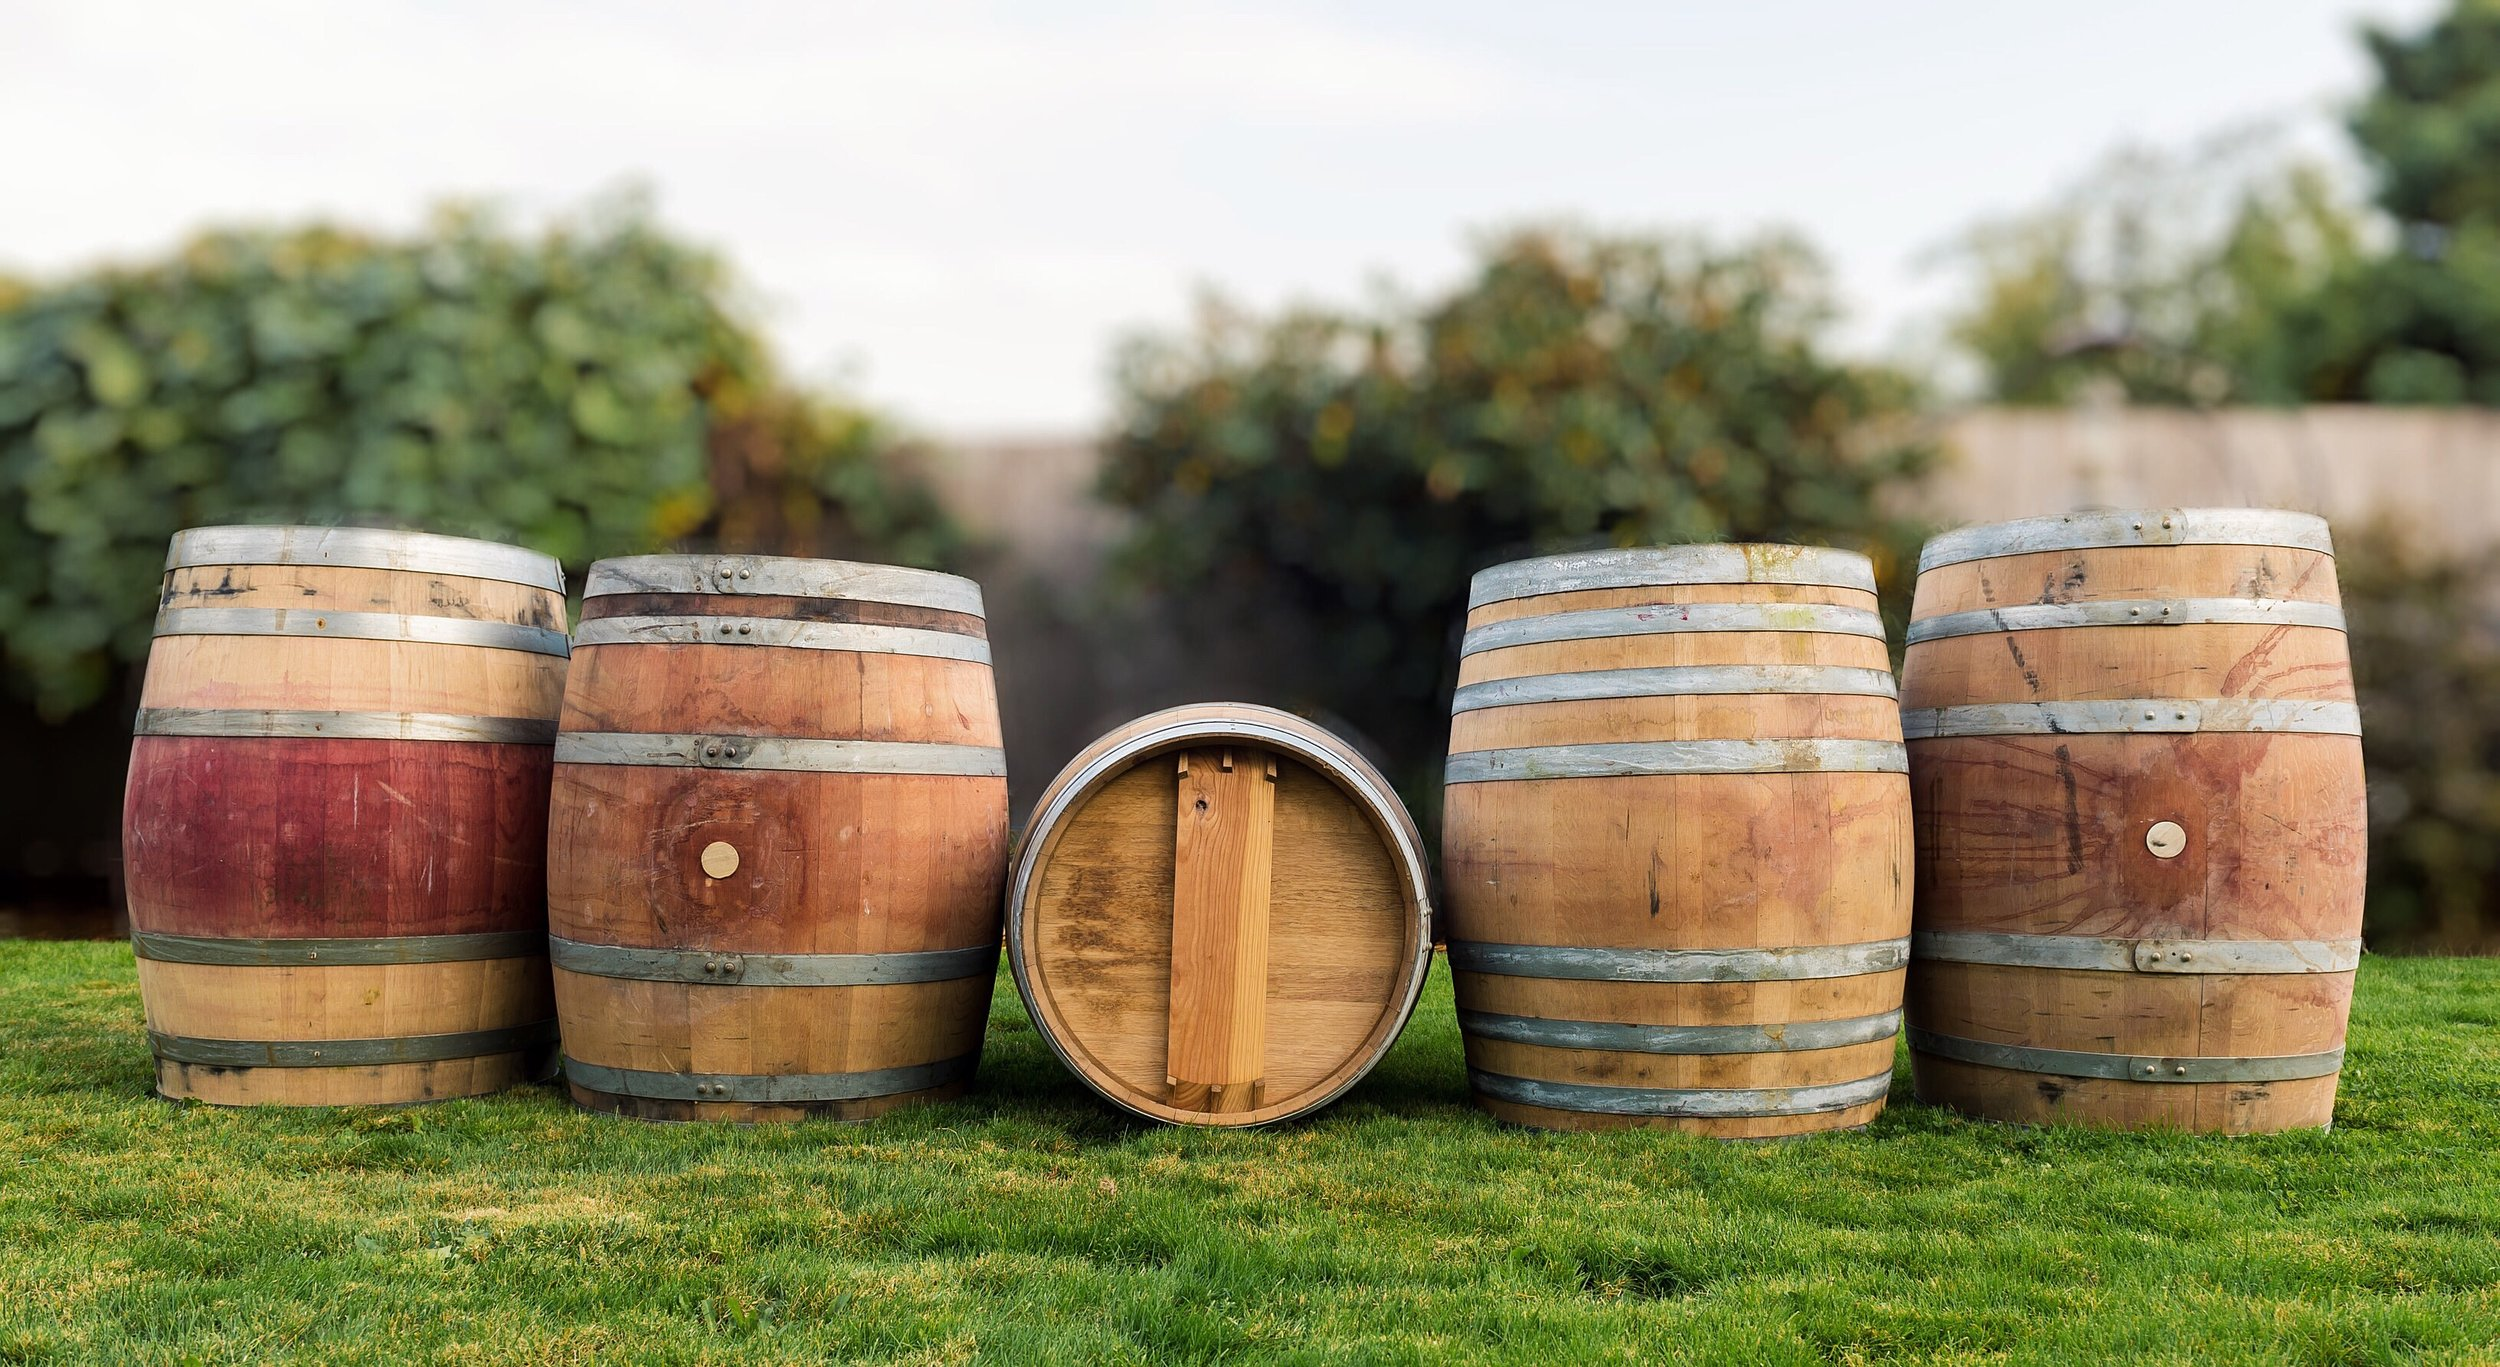 Real Wood - Lawn and Garden - Oak Barrels - Whole Oak Wine B120 - Group Shot.JPG